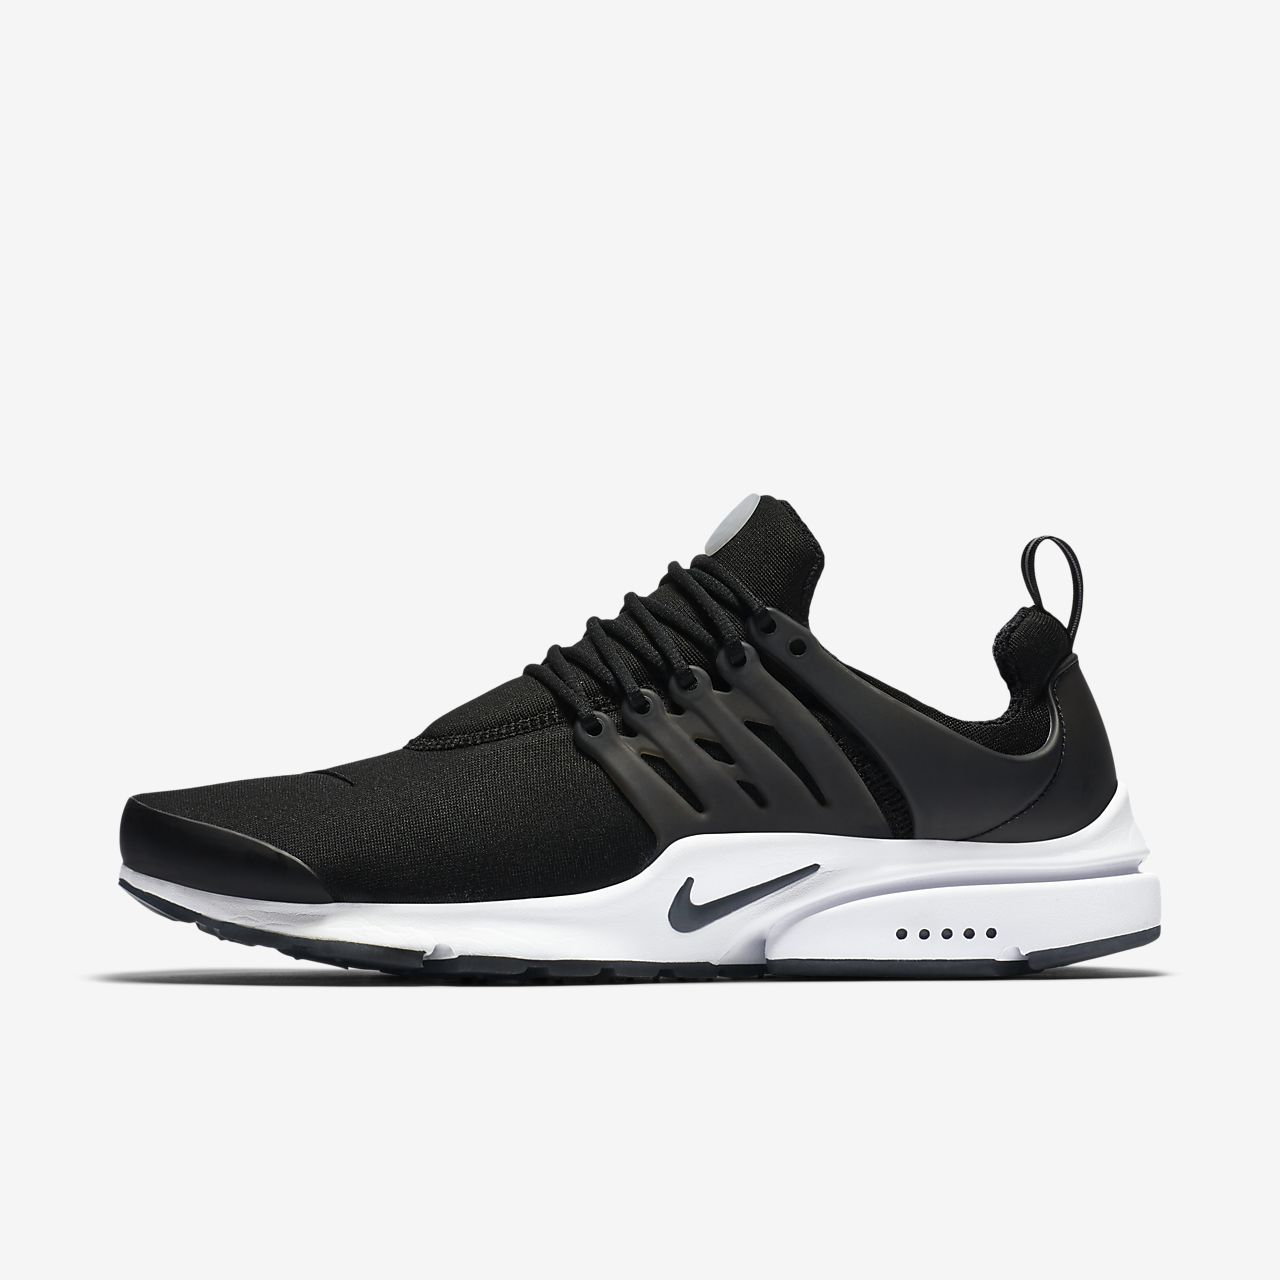 Holiday Deals Nike Air Presto Men's Casual Shoes Black Trainers Running Sneakers New